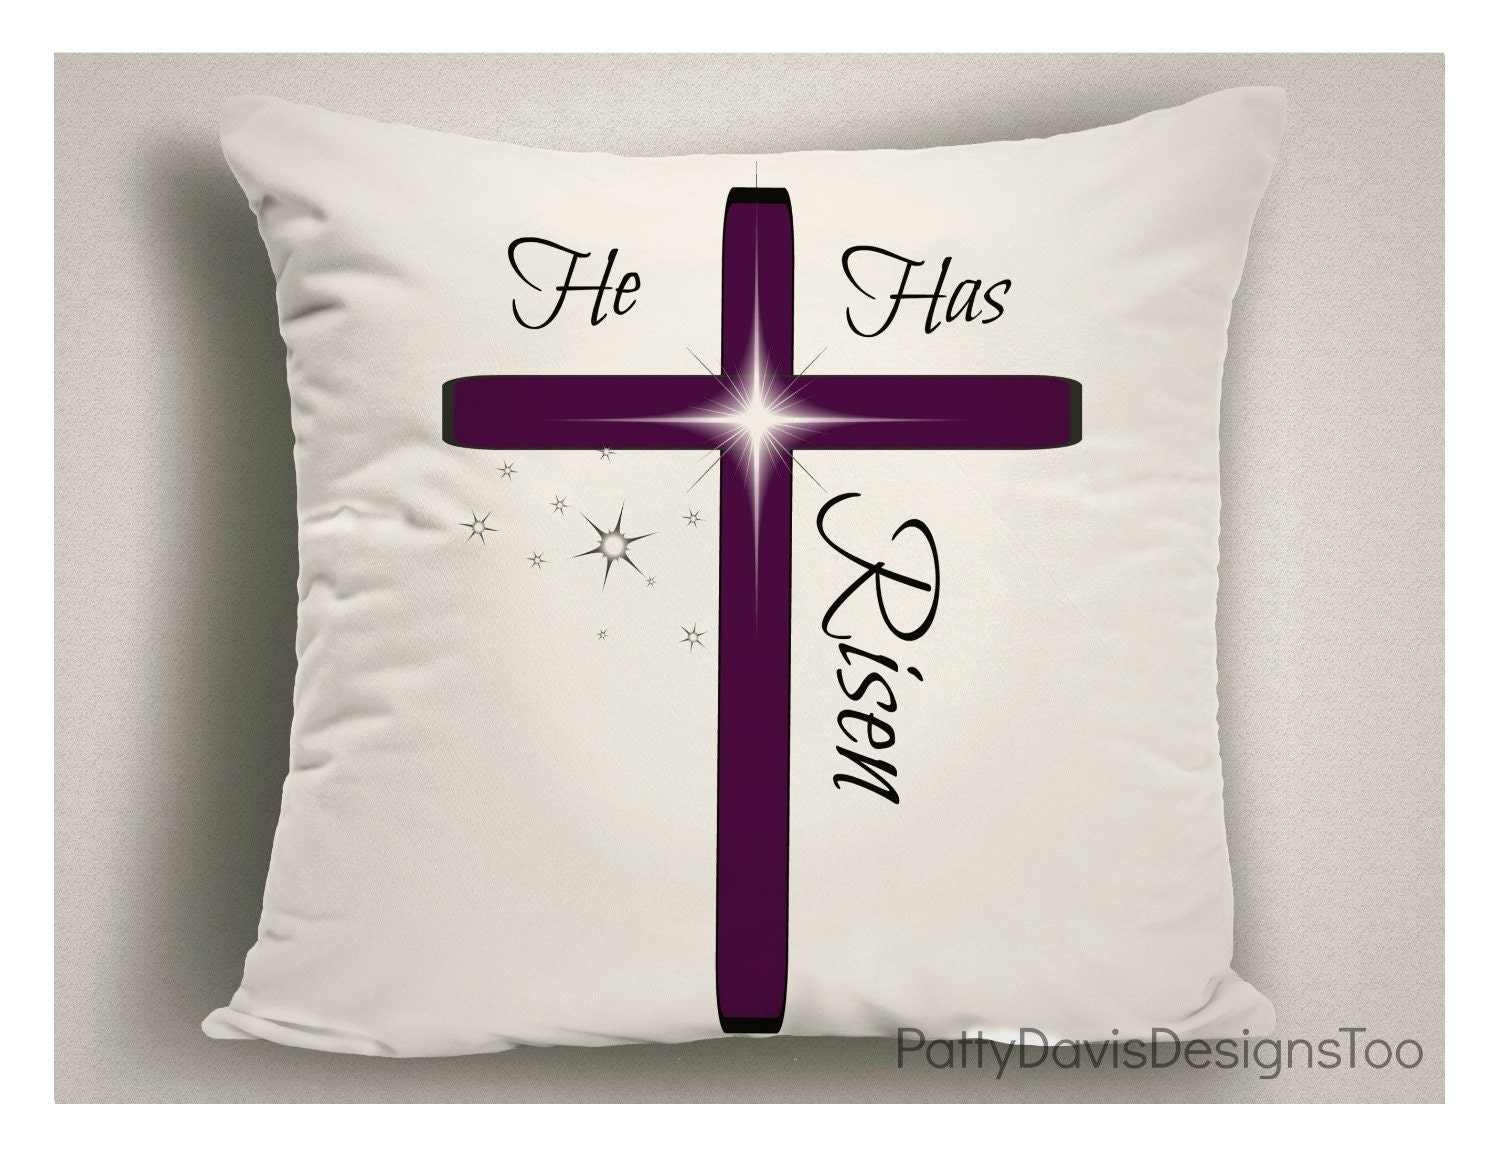 Easter pillow easter decoration easter decor easter gifts home easter pillow easter decoration easter decor easter gifts home decor decorative pillow throw pillow pillow cover made in usa negle Choice Image